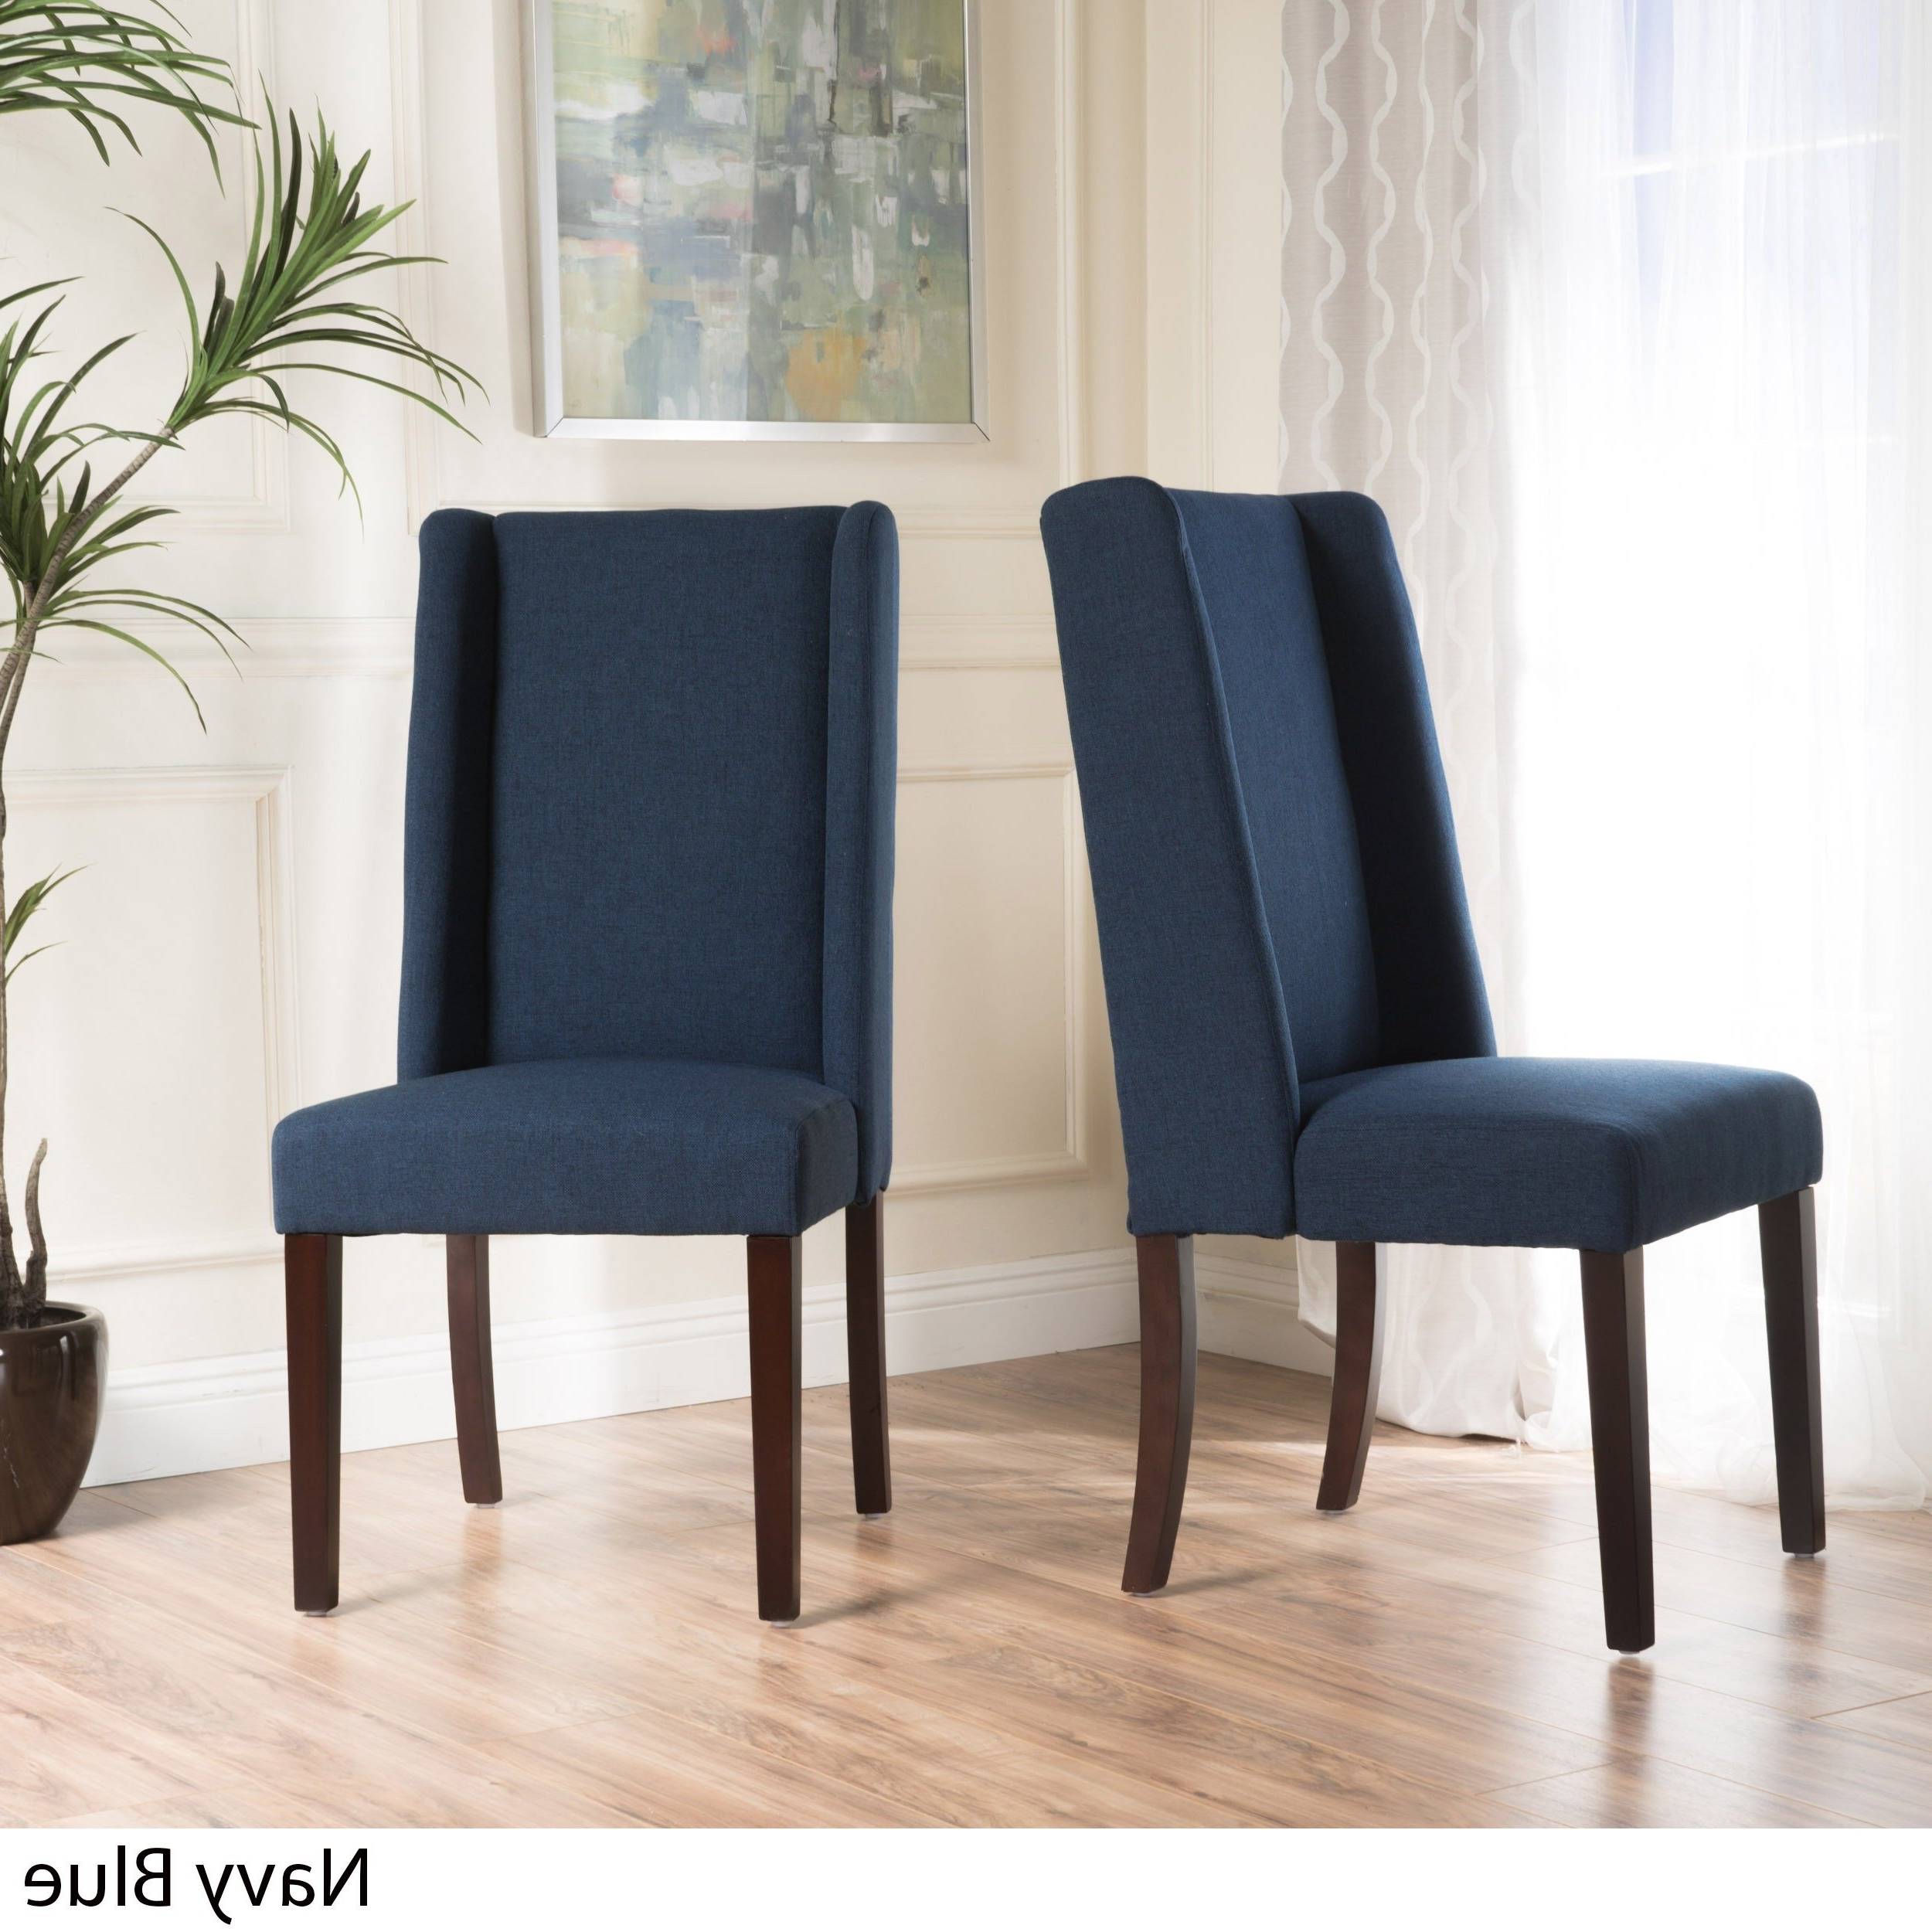 Preferred Shop Rory Wing Back Fabric Dining Chair (set Of 2)christopher Regarding Rory Sofa Chairs (View 9 of 20)